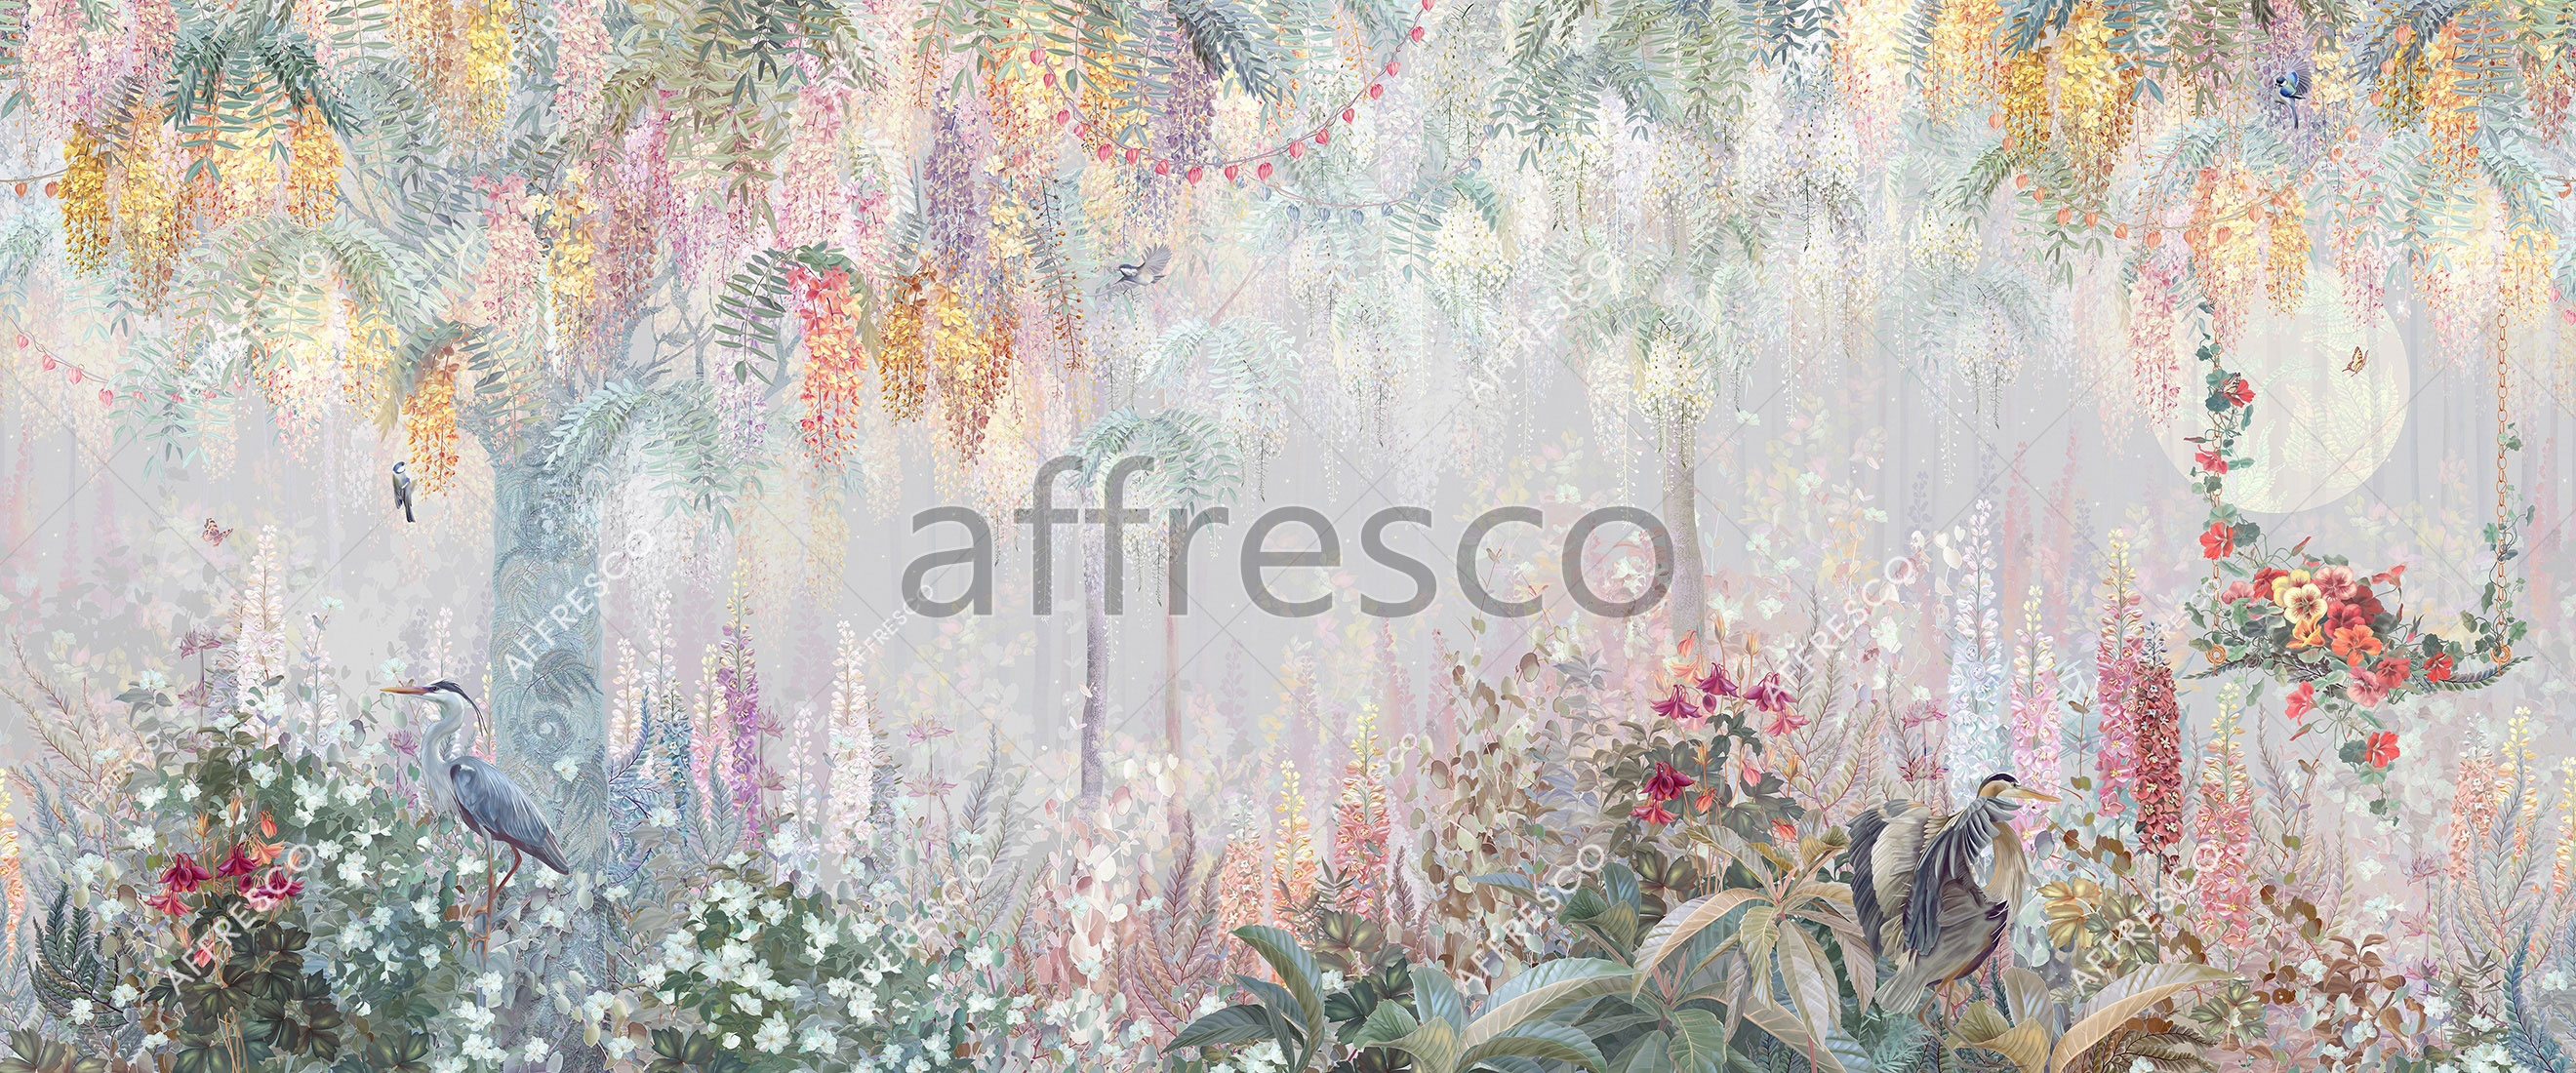 ID136004 | Forest |  | Affresco Factory